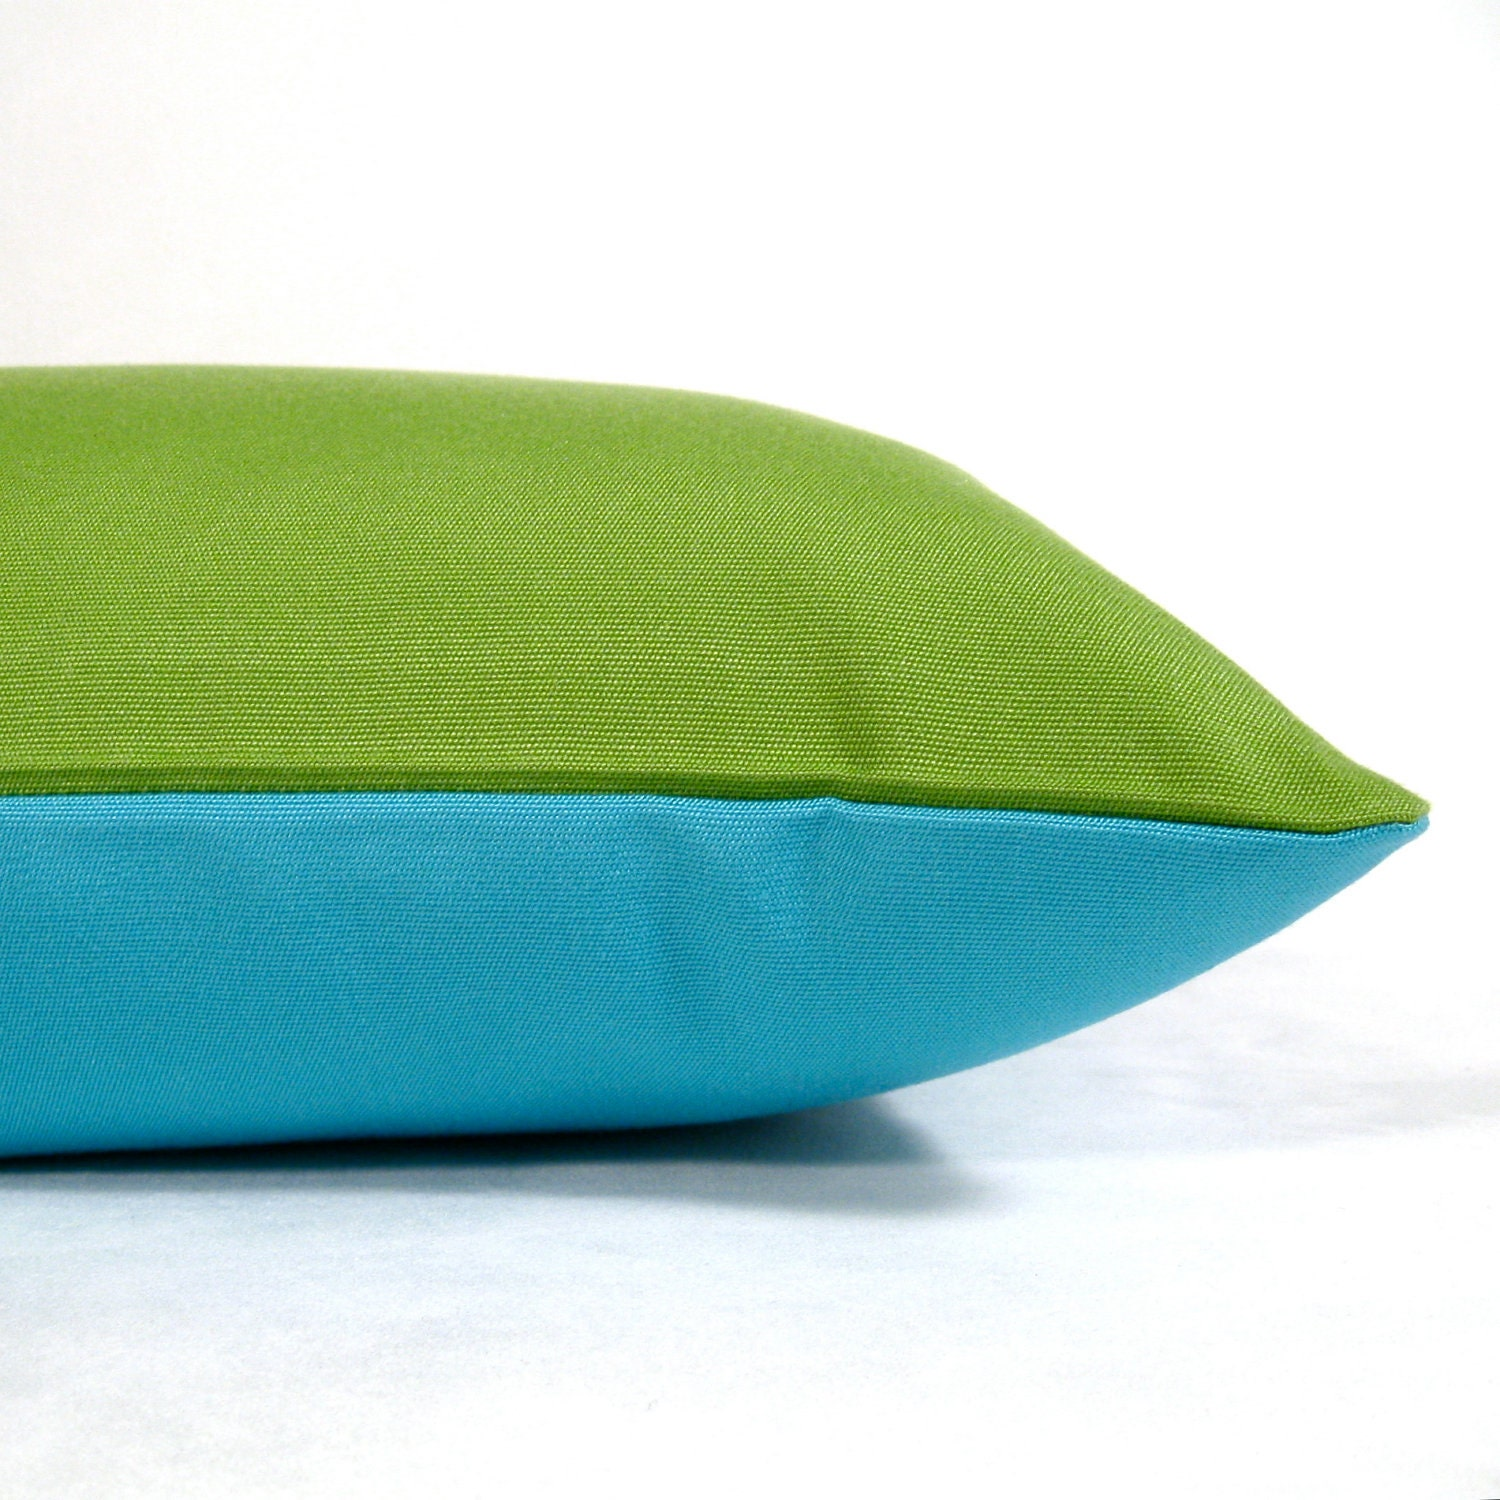 SALE Blue Pillow Cover Green Outdoor Cushion by Mazizmuse